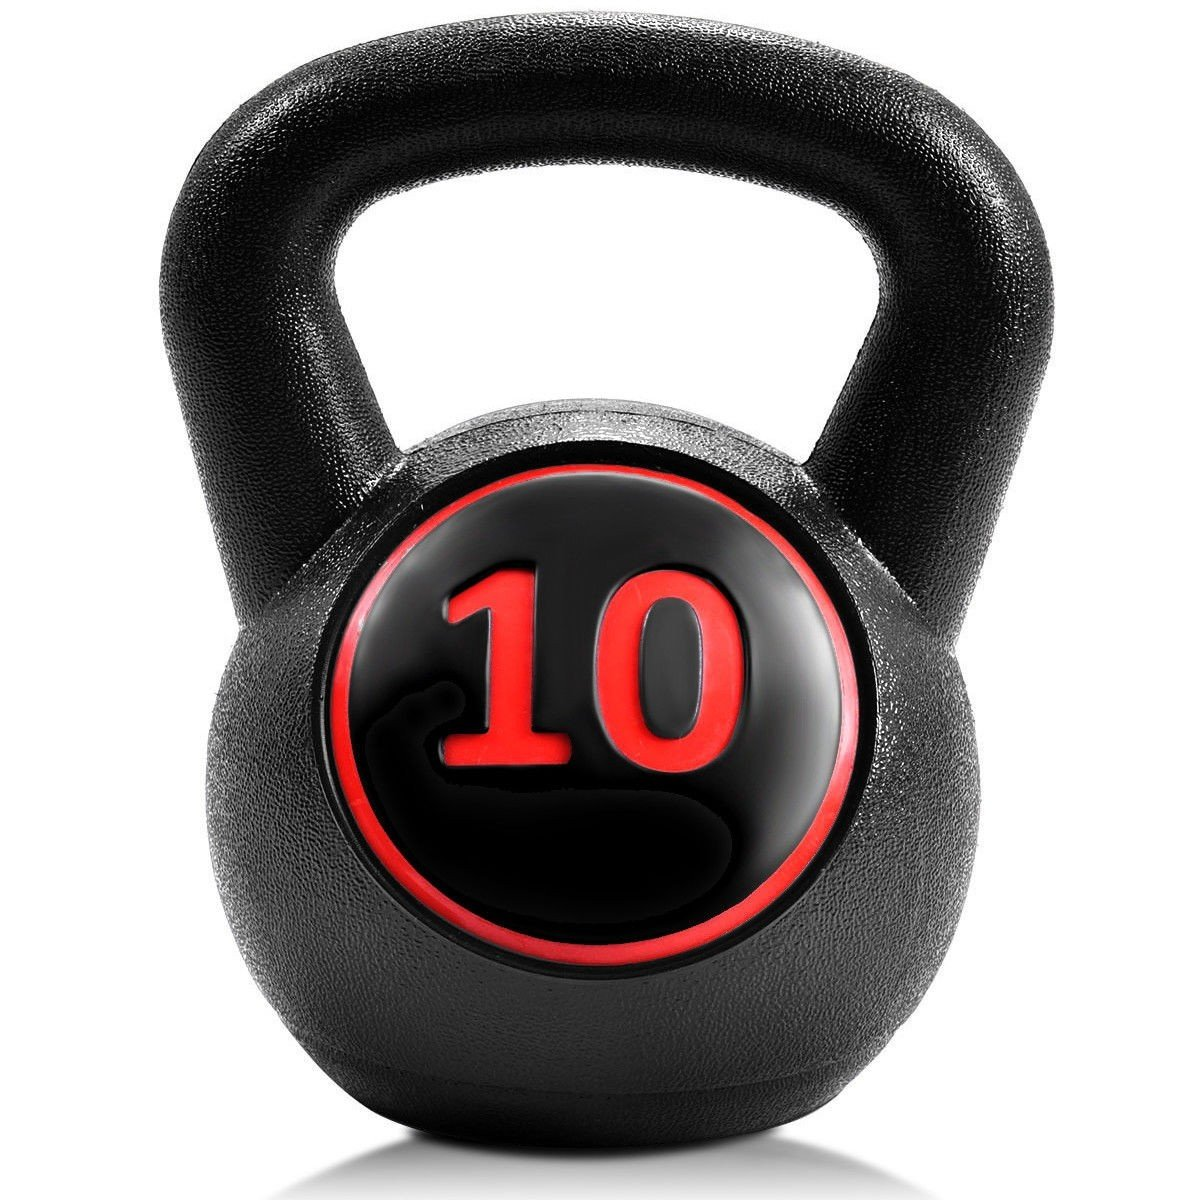 MD Group 3 pcs 5 10 15lbs Kettlebell Kettle Bell Weight Set by MD Group (Image #3)